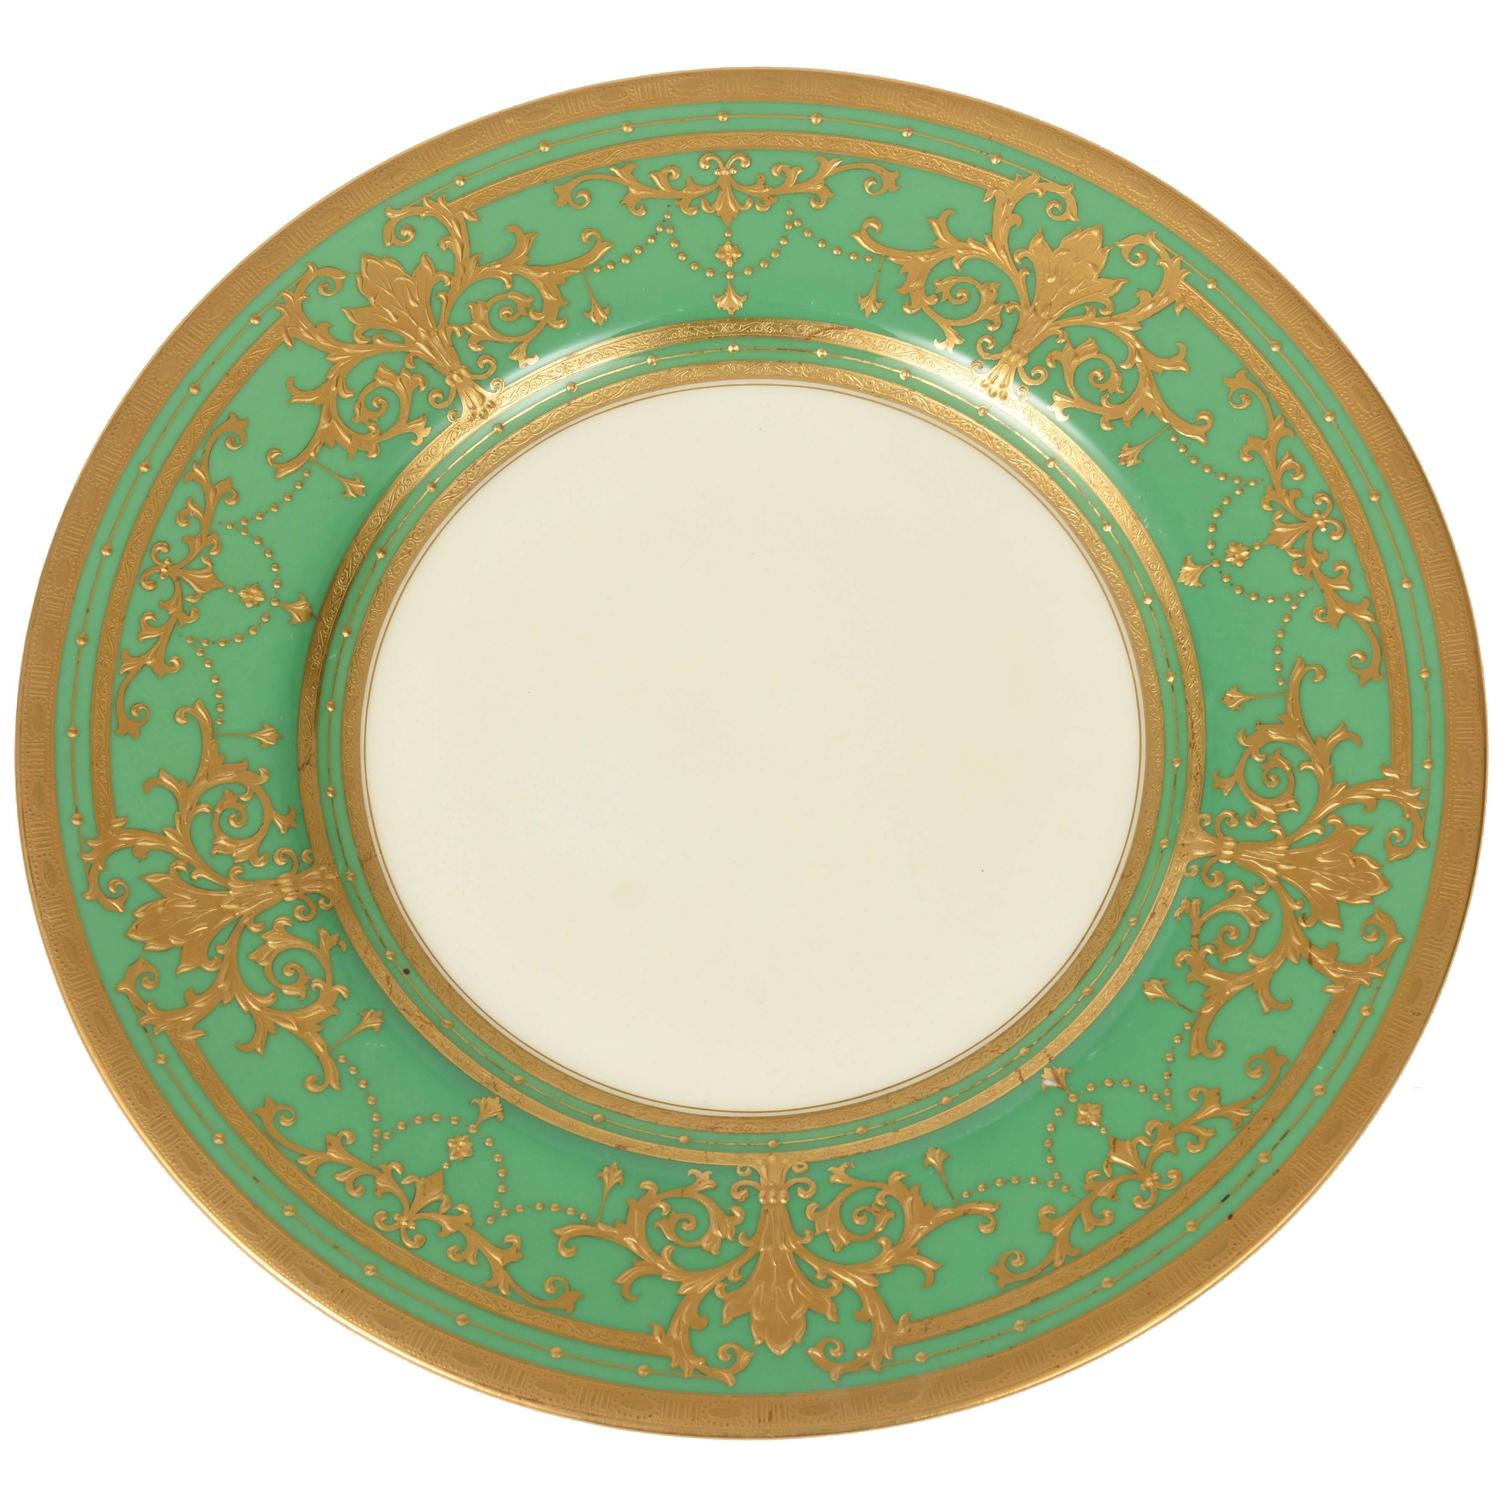 1920s Dinner Plates - 63 For Sale at 1stdibs